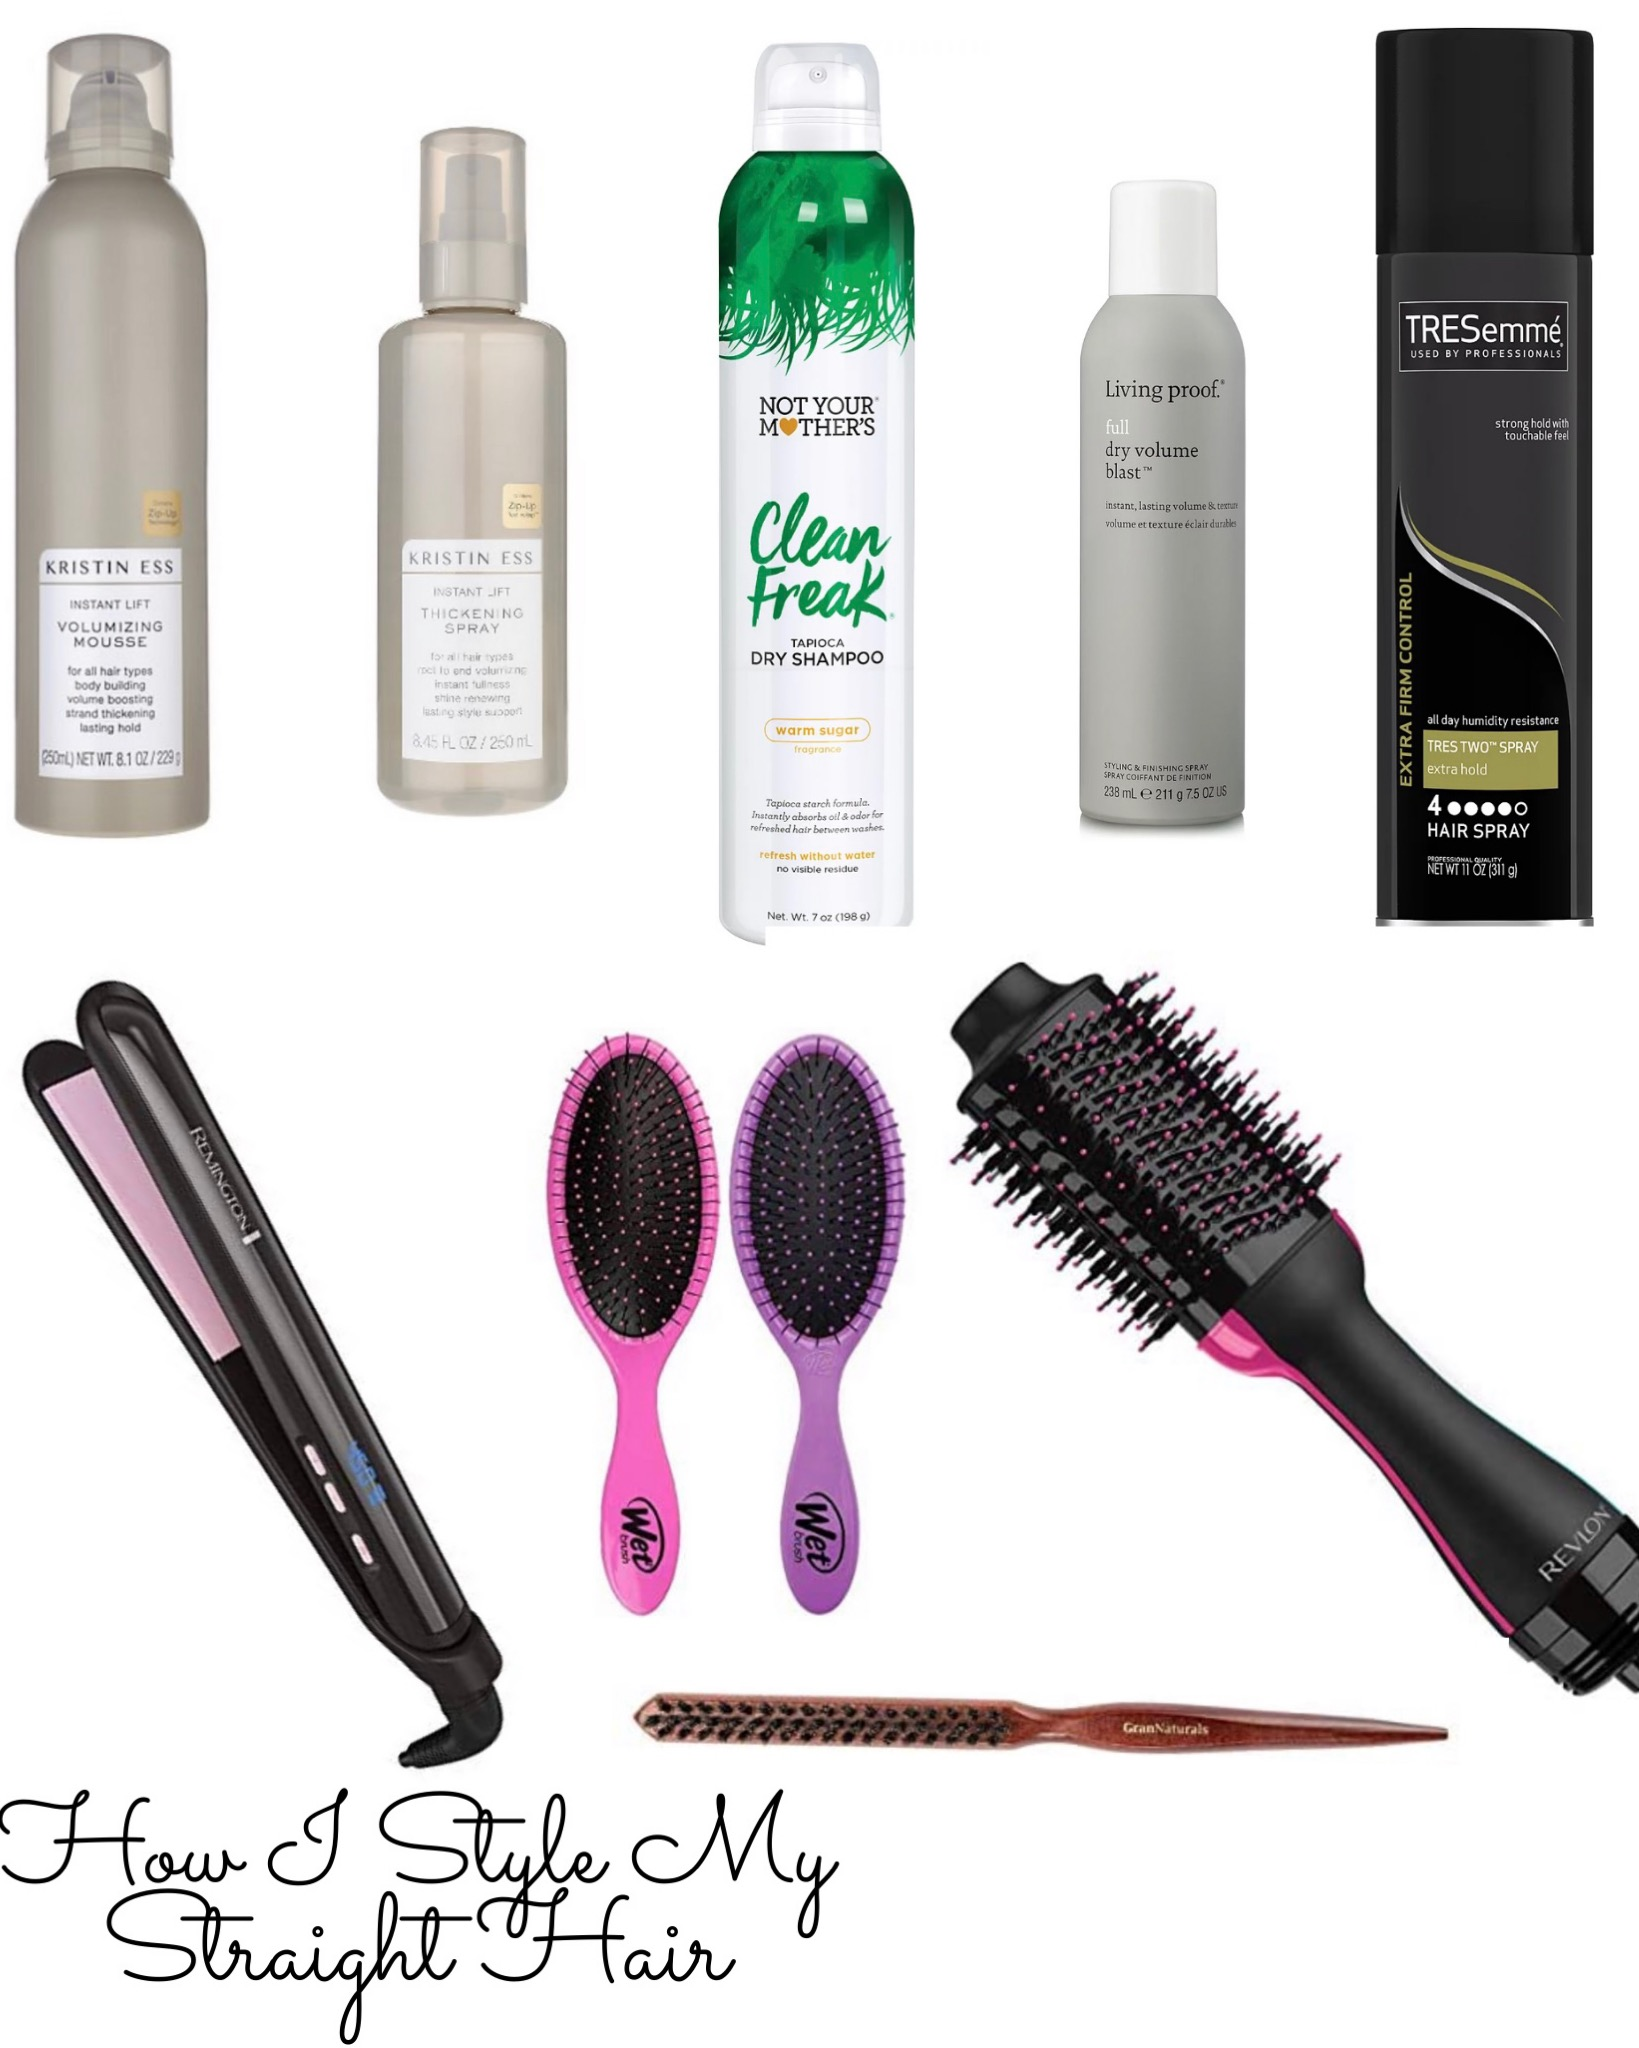 What I Use To Style My Straight Hair (Lob Haircut)  - Something Delightful Blog